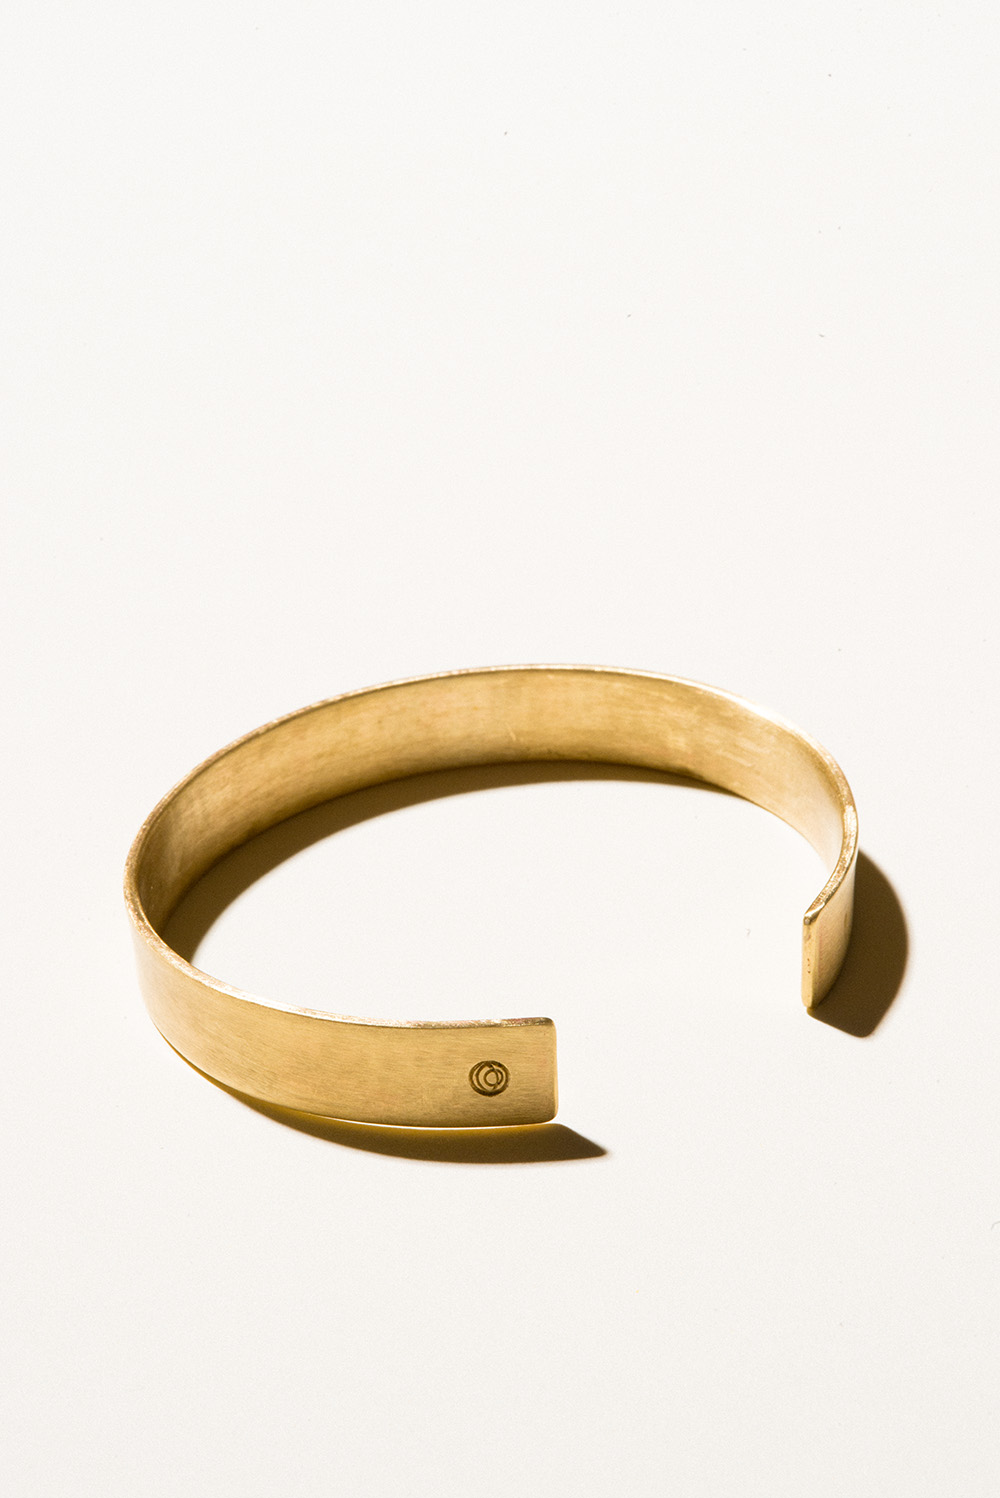 10 Brass Cuff - 10mm wideJewelers Brass with Lacquer FinishHand Smithed$75